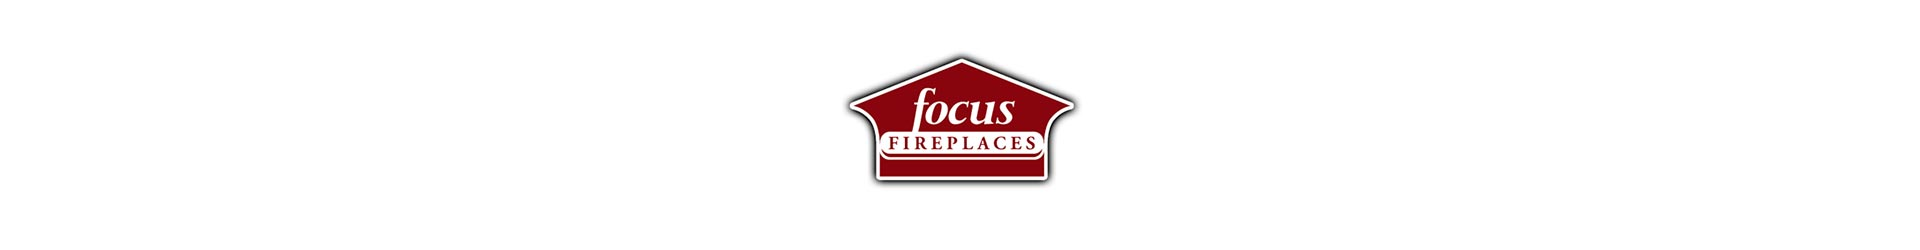 Focus-Fireplaces-Banner